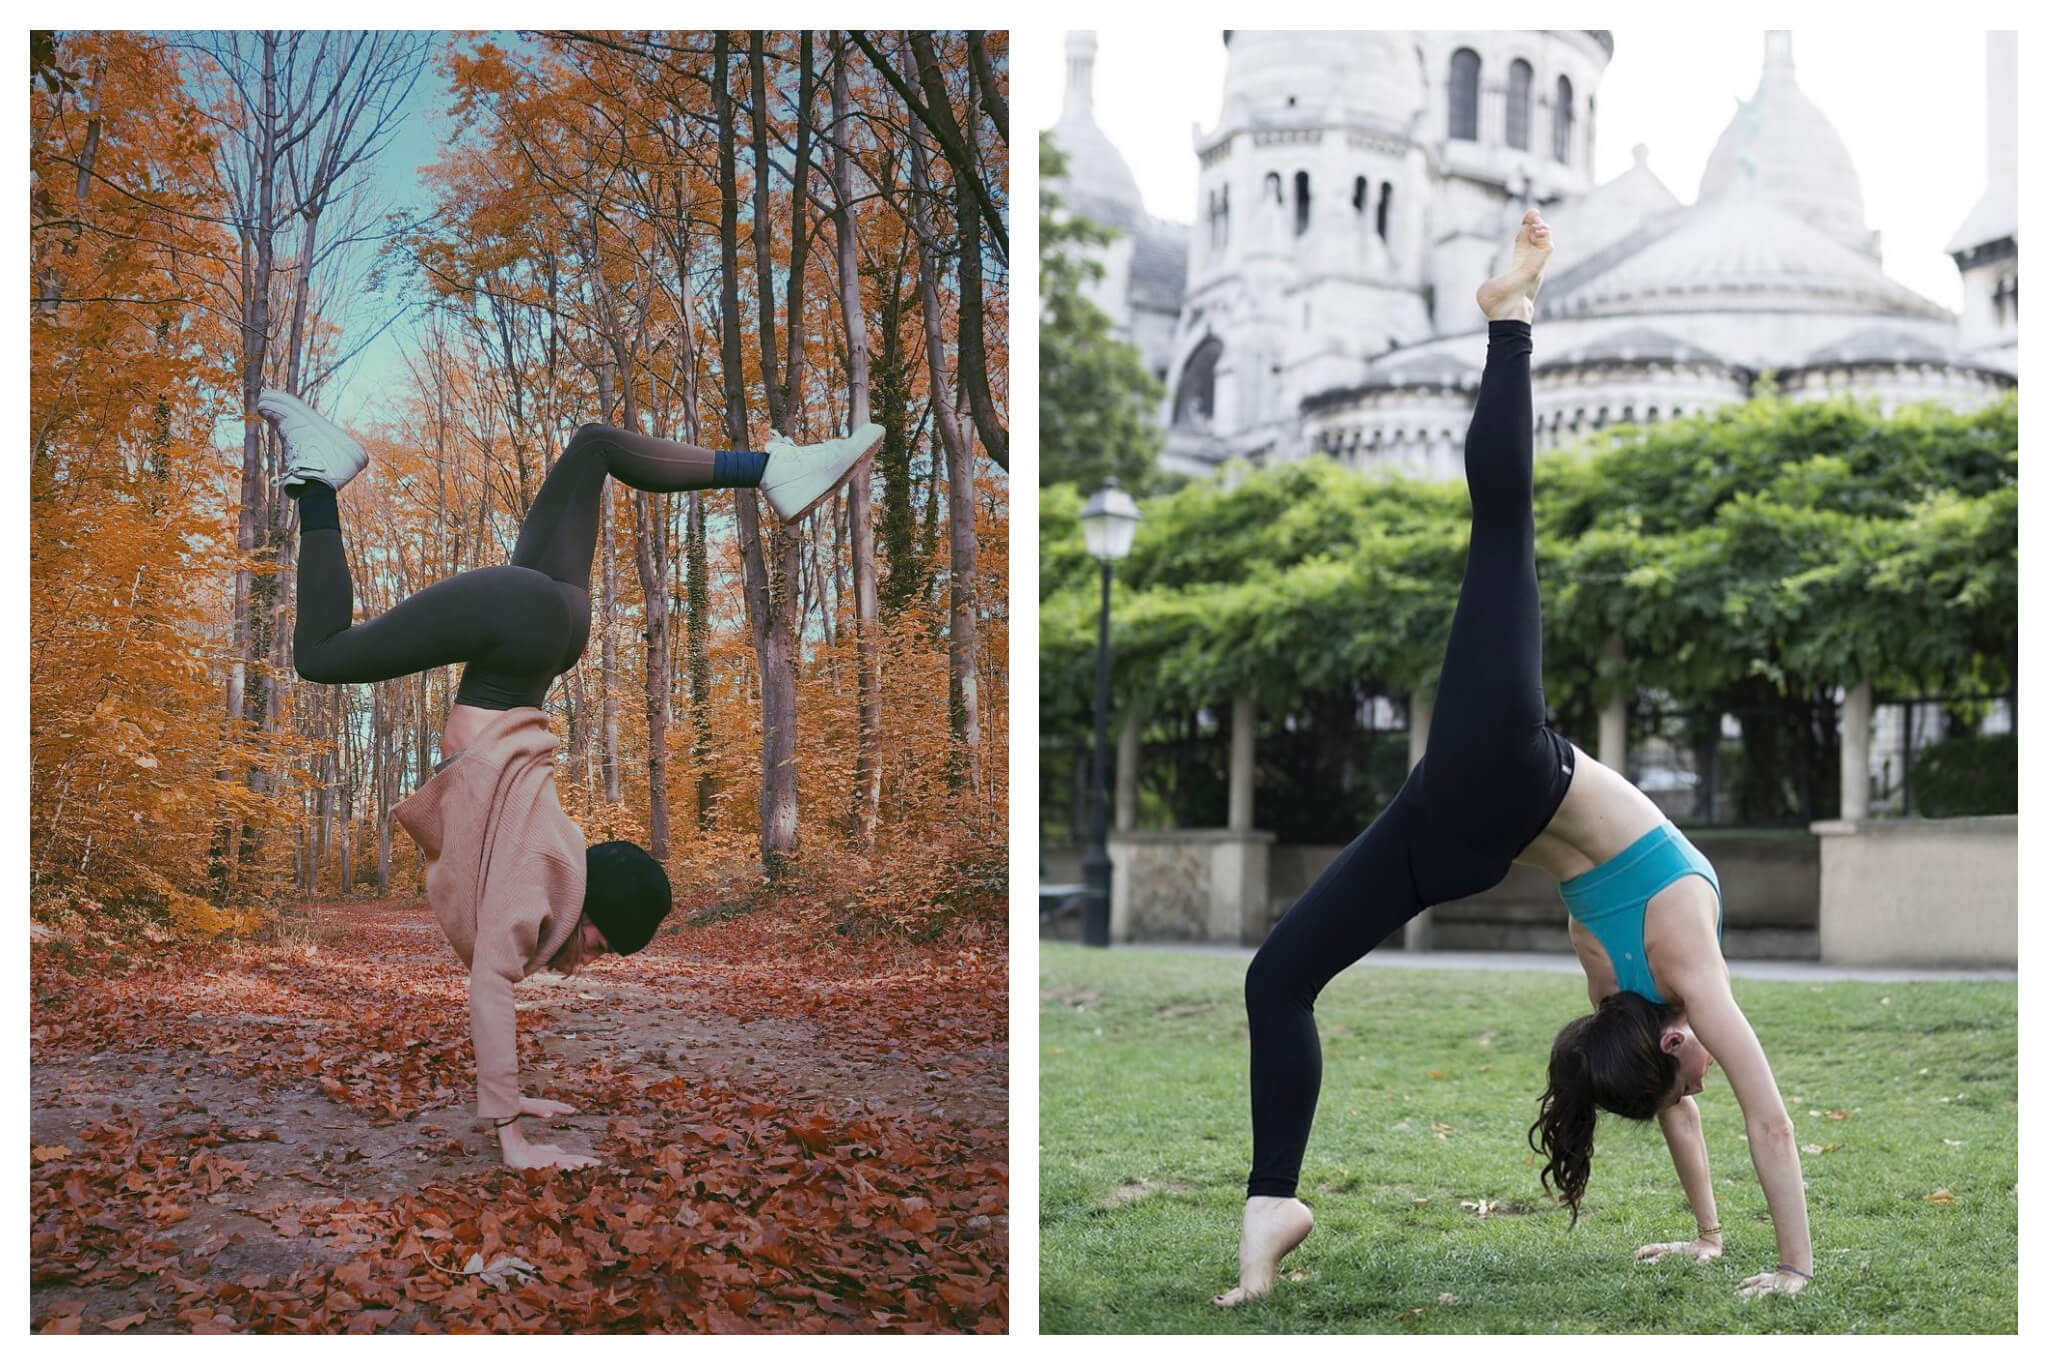 Left: a woman does a handstand in a forest during the autumn. Right: a woman does a backbend with one leg sticking up vertically in the ai, in front of the Sacre Coeur.